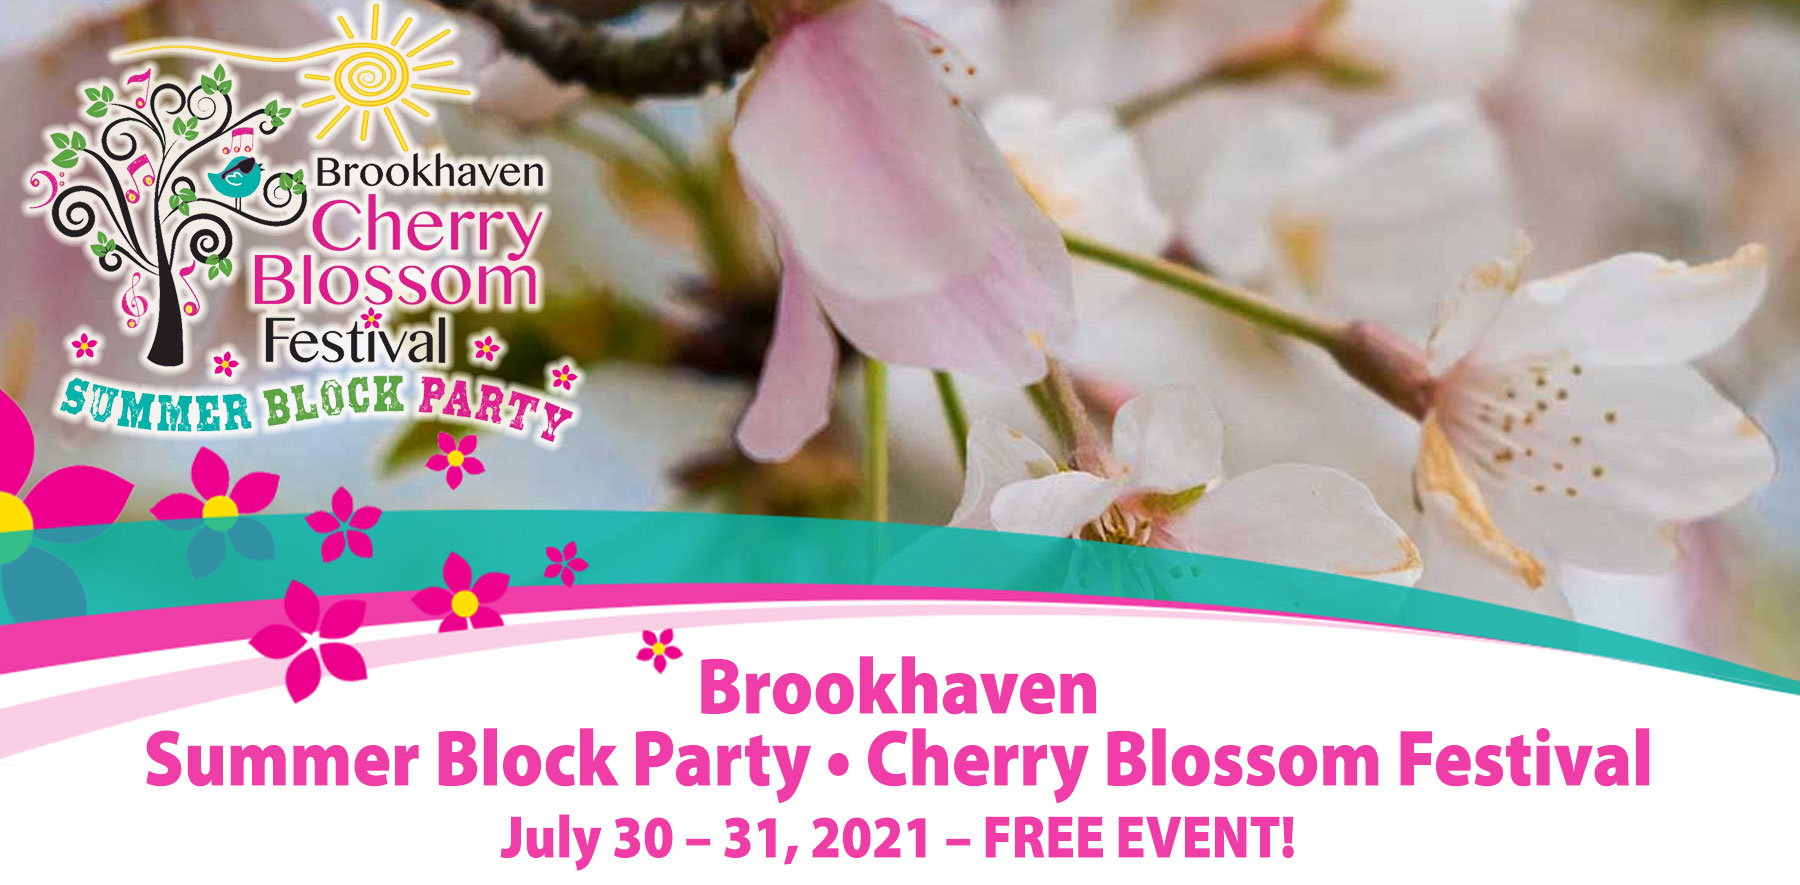 Friday, July 30, 3-11 p.m., and Saturday, July 31, noon-11 p.m. in the Brookhaven MARTA parking lot and along Apple Valley Road and Dresden Drive.